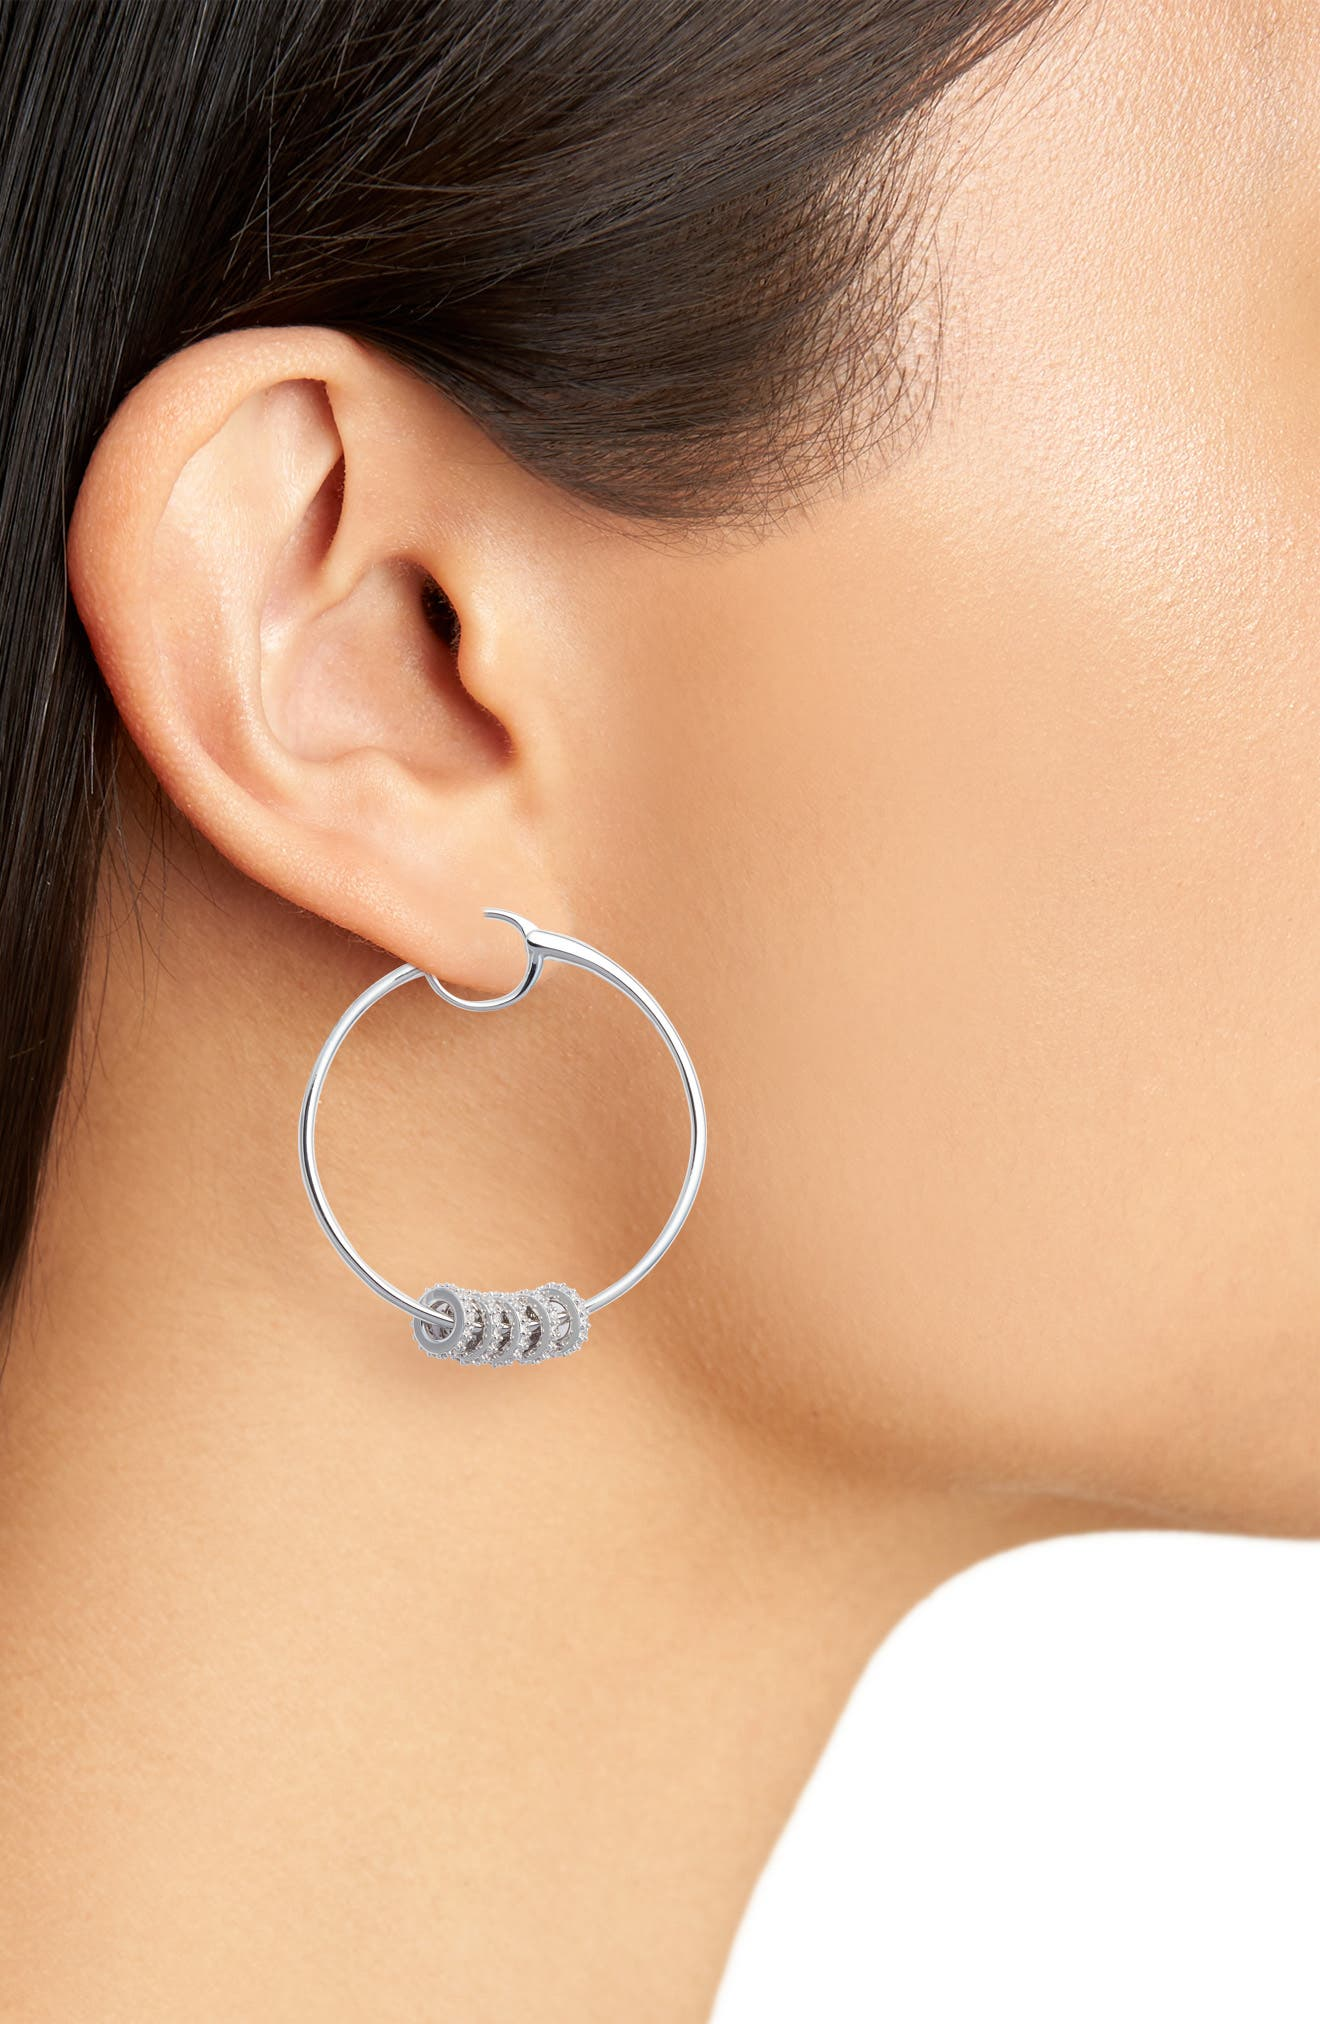 Hoop Earrings,                             Alternate thumbnail 2, color,                             SILVER